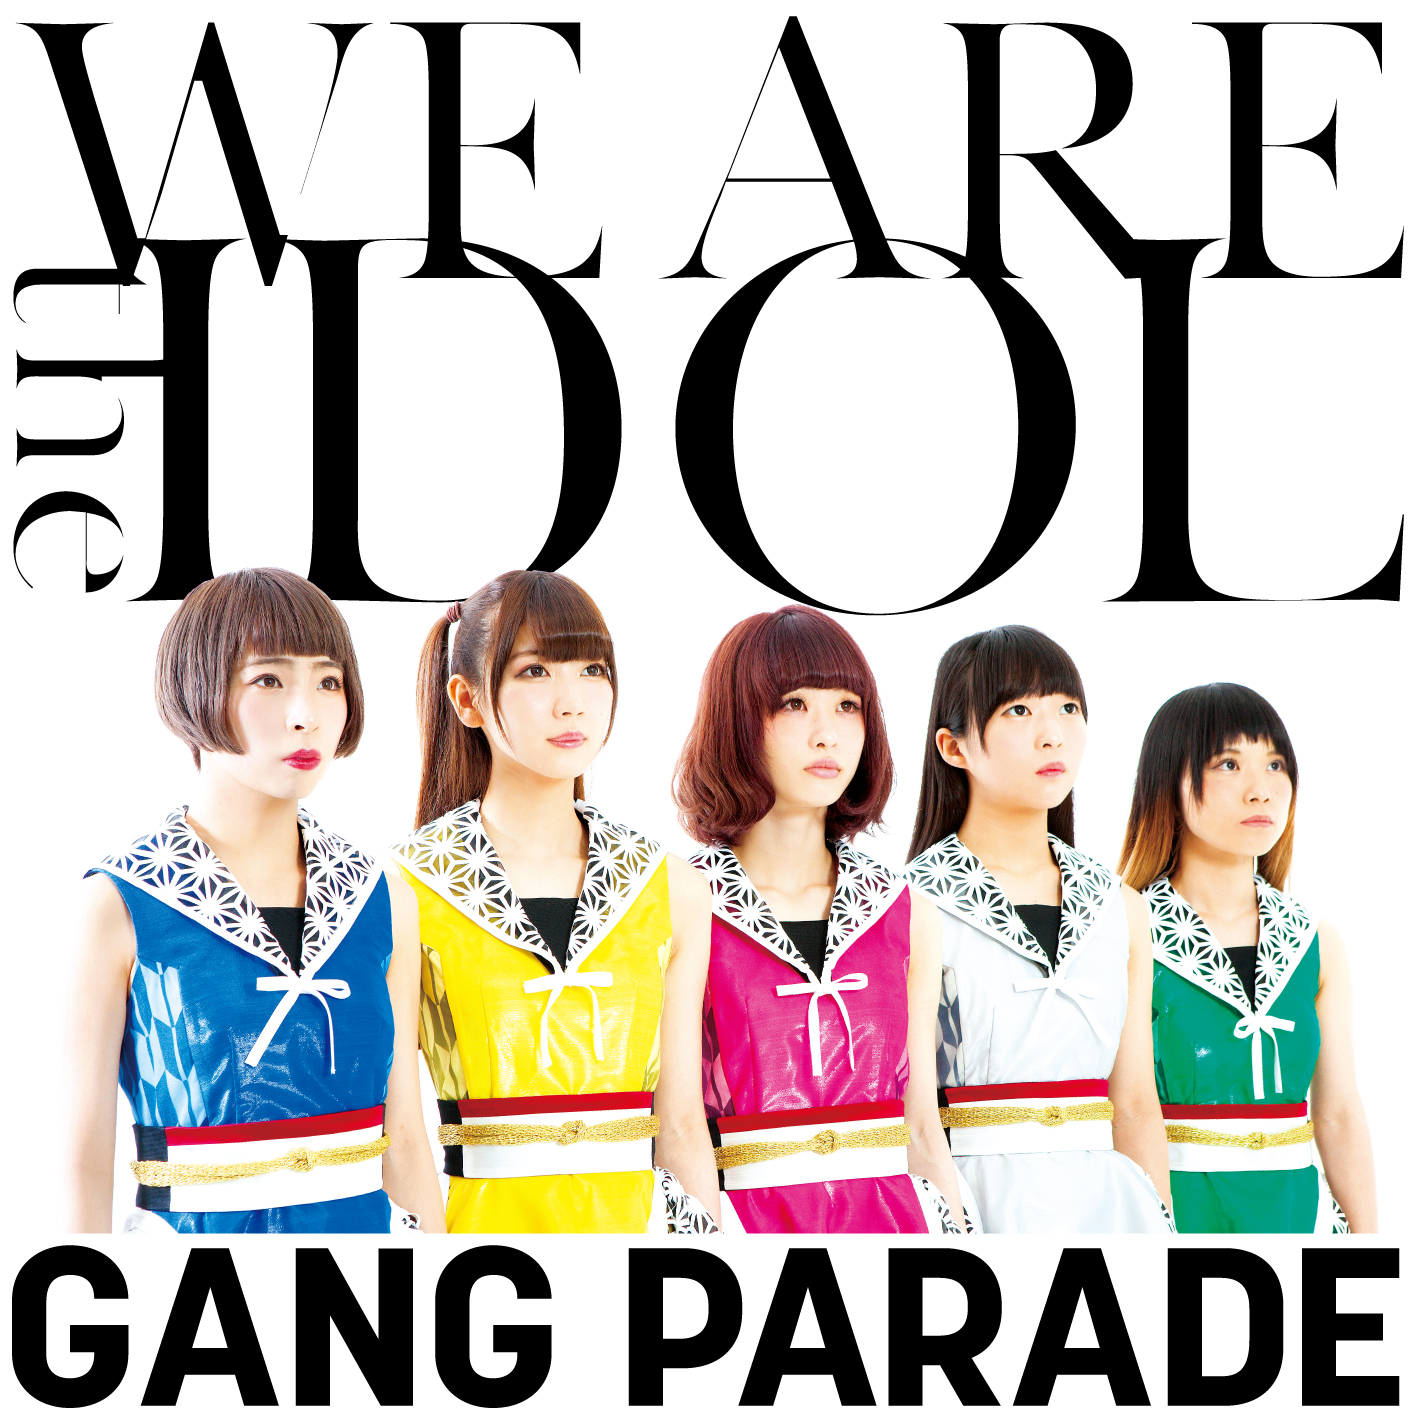 20161228.07.43 Gang Parade - WE ARE the IDOL cover.jpg